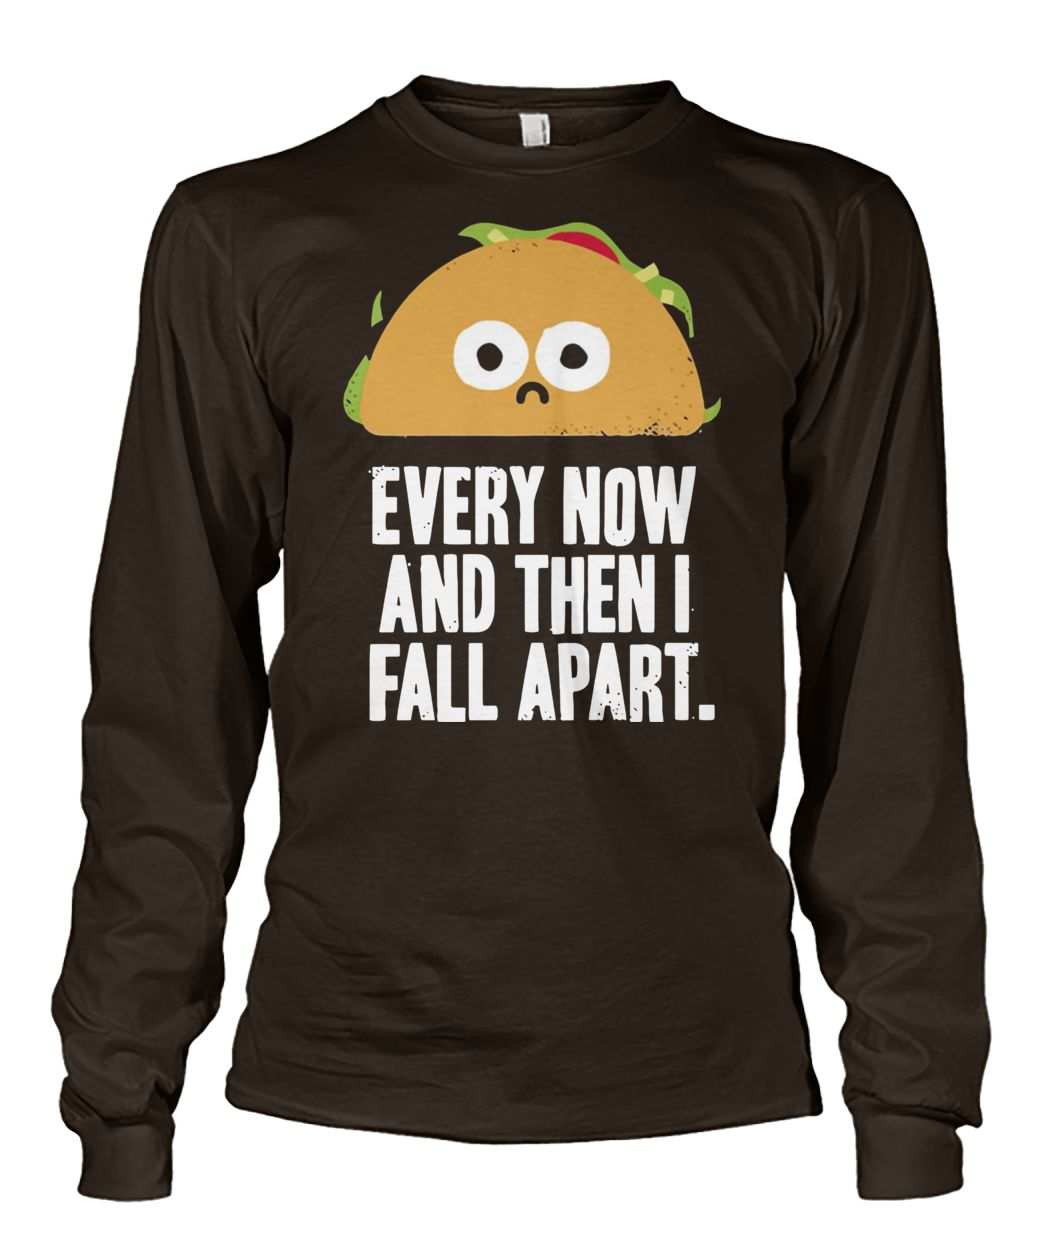 Every now and then I fall apart taco unisex long sleeve